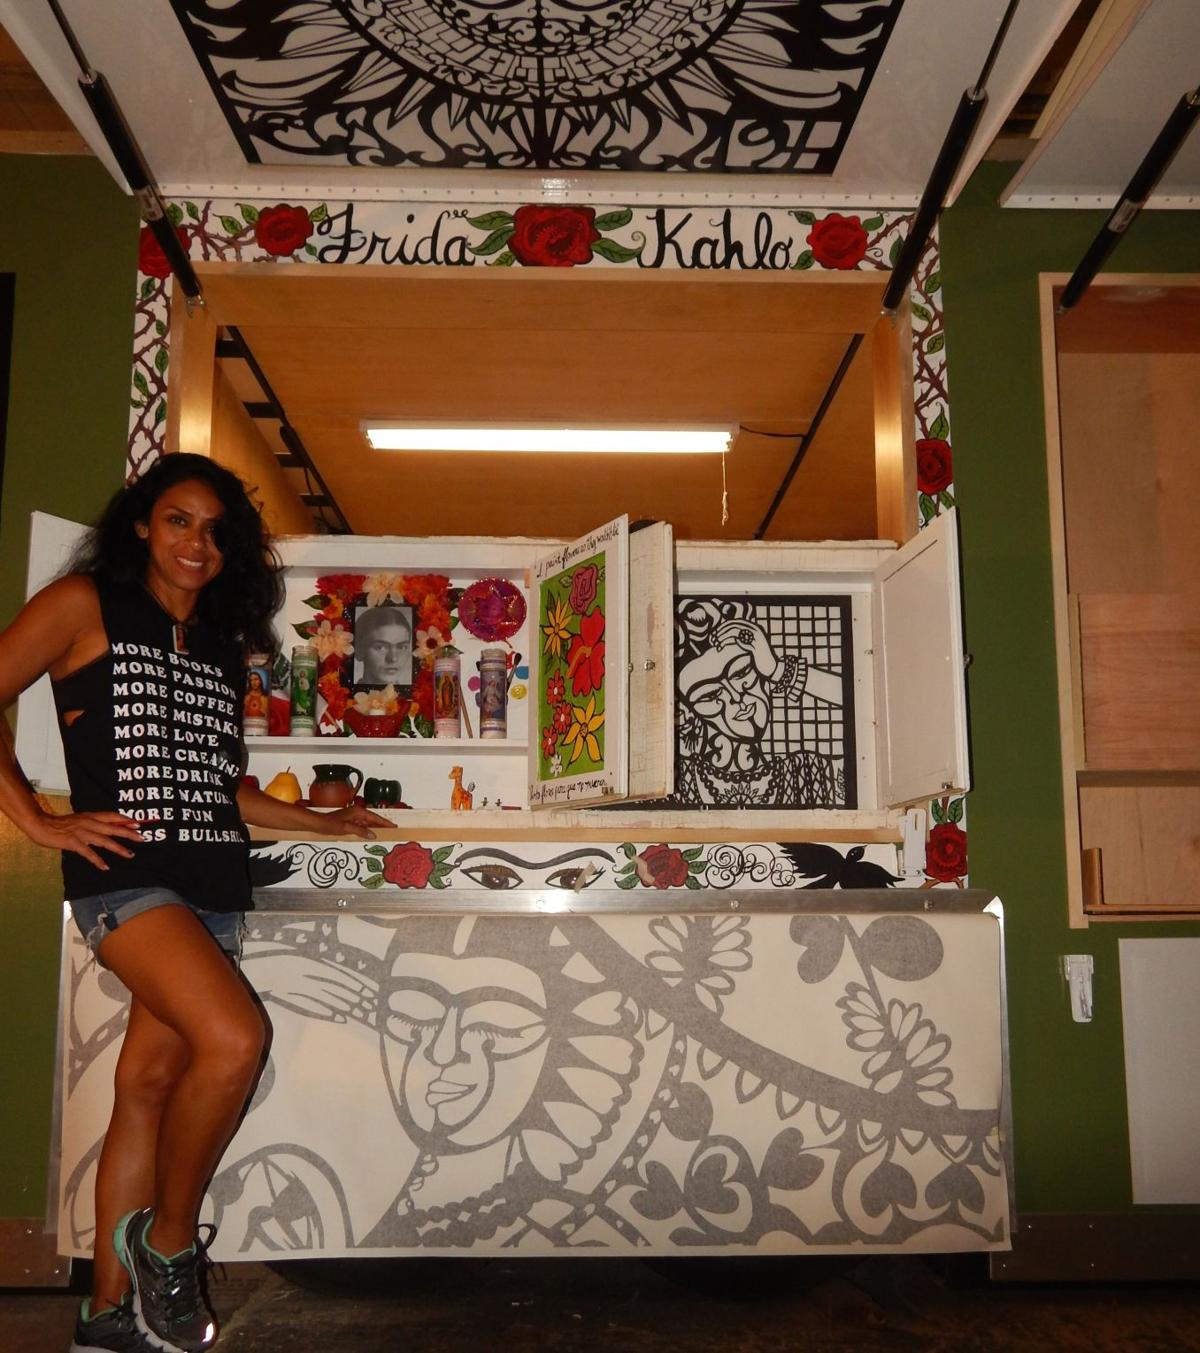 The mobile art of papel picado is making its debut downtown